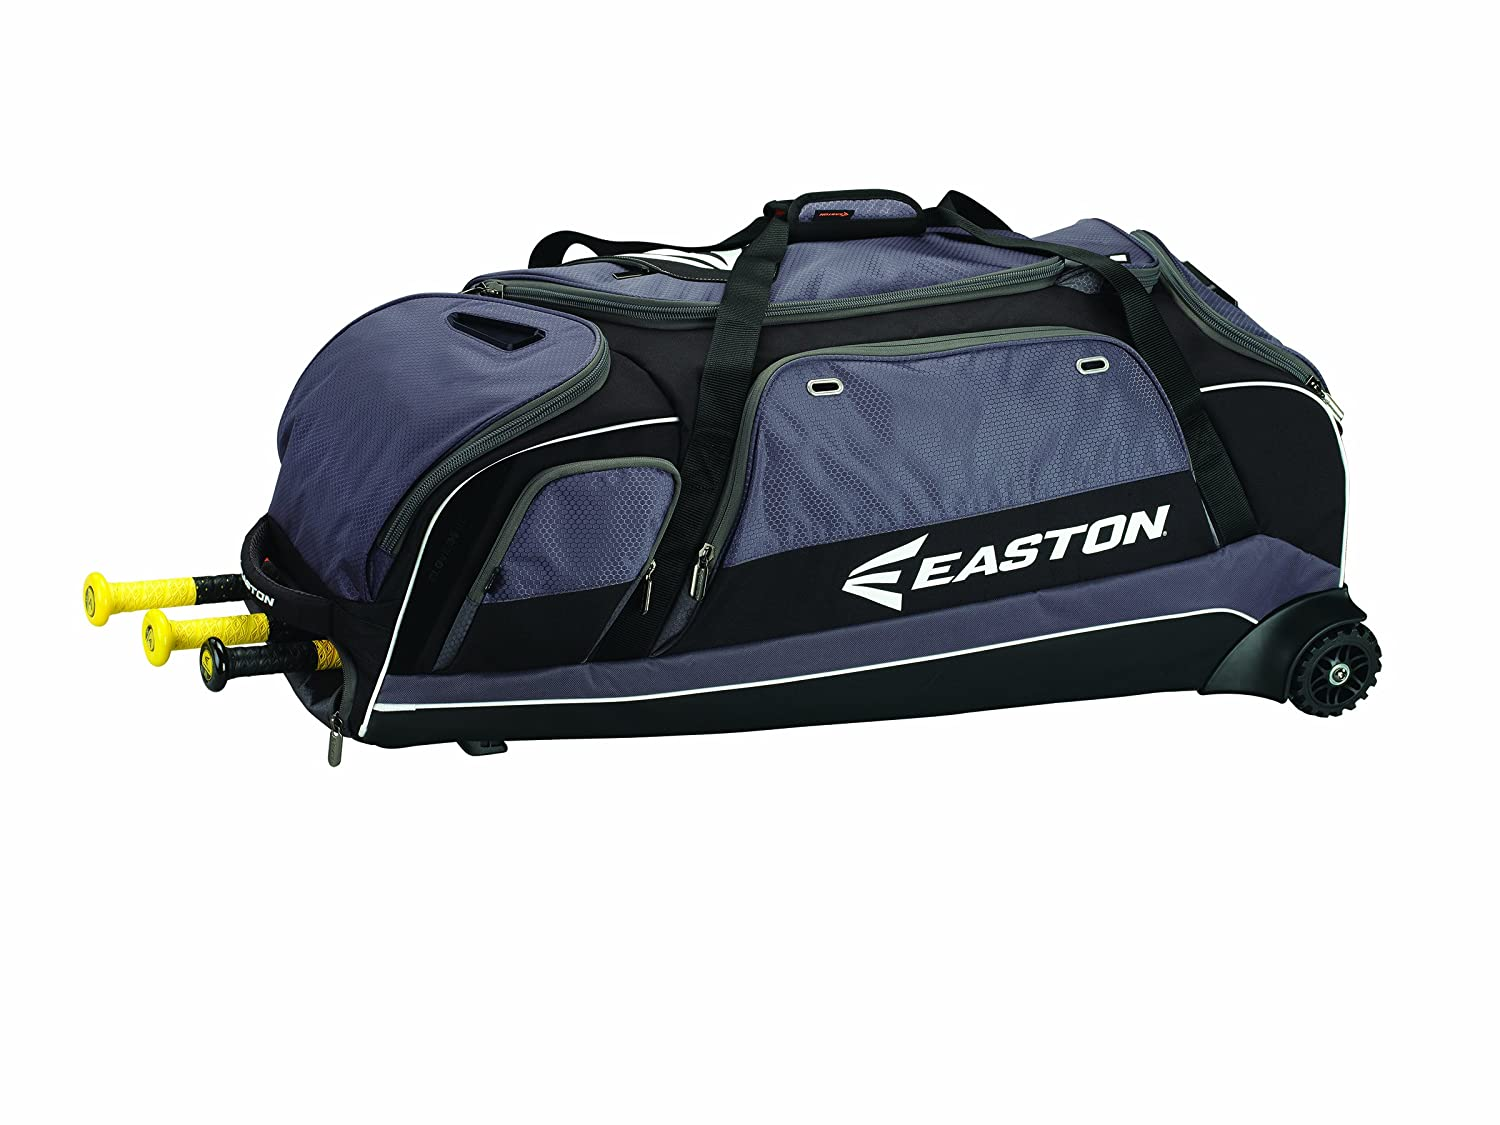 Amazoncom Easton E900c Wheeled Bag Black Sports Outdoors